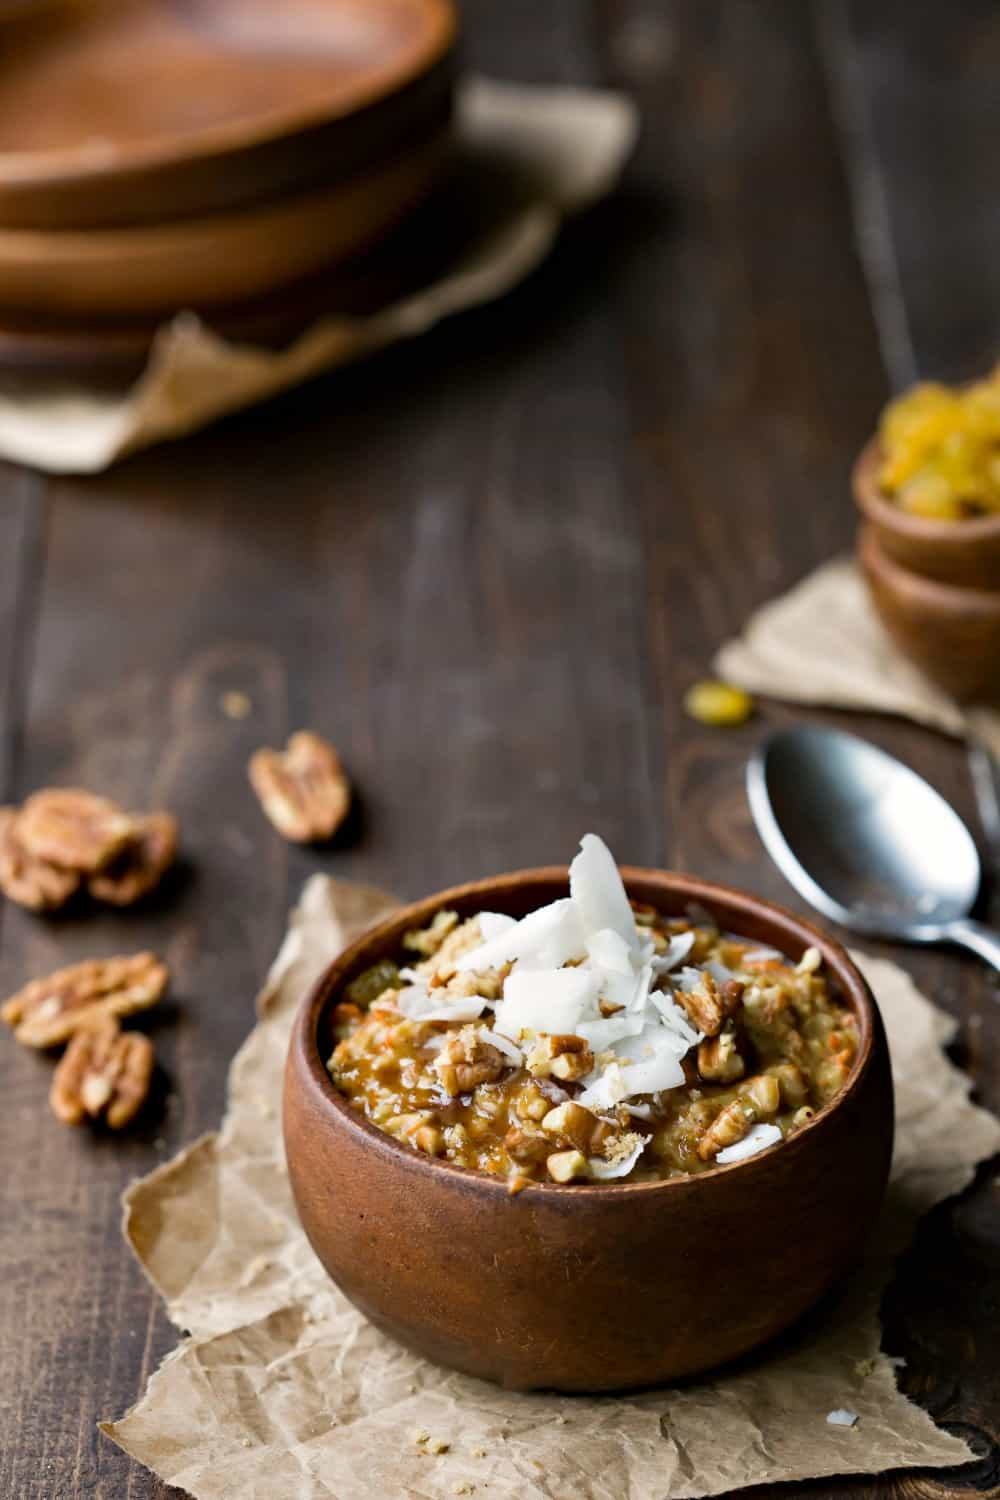 Crock Pot Carrot Cake Oatmeal topped with coconut and chopped pecans in a wooden bowl